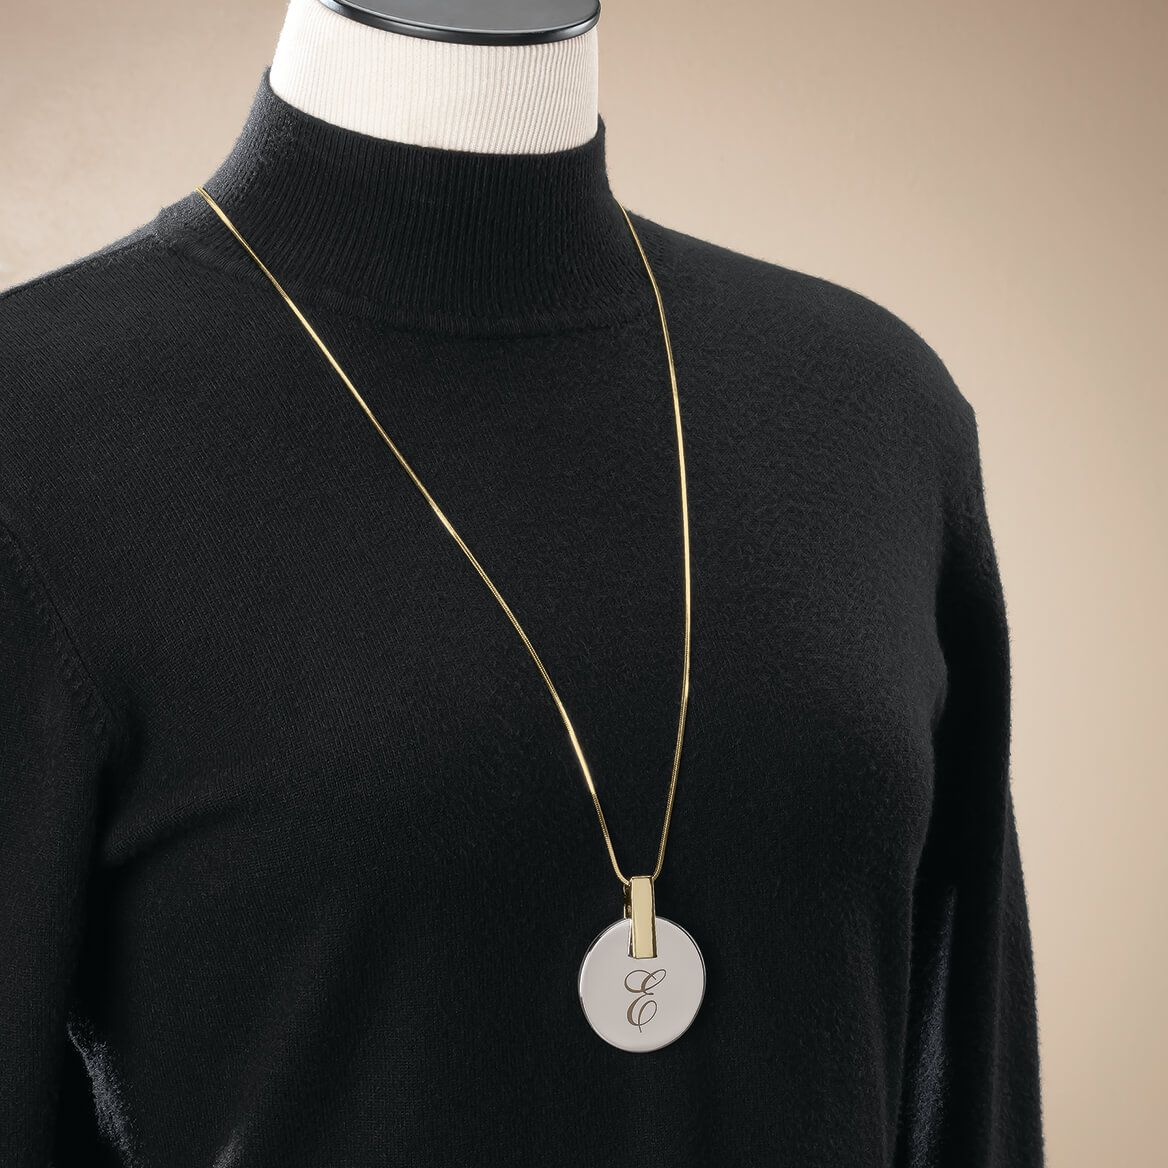 Personalized Large Disc Necklace-369360